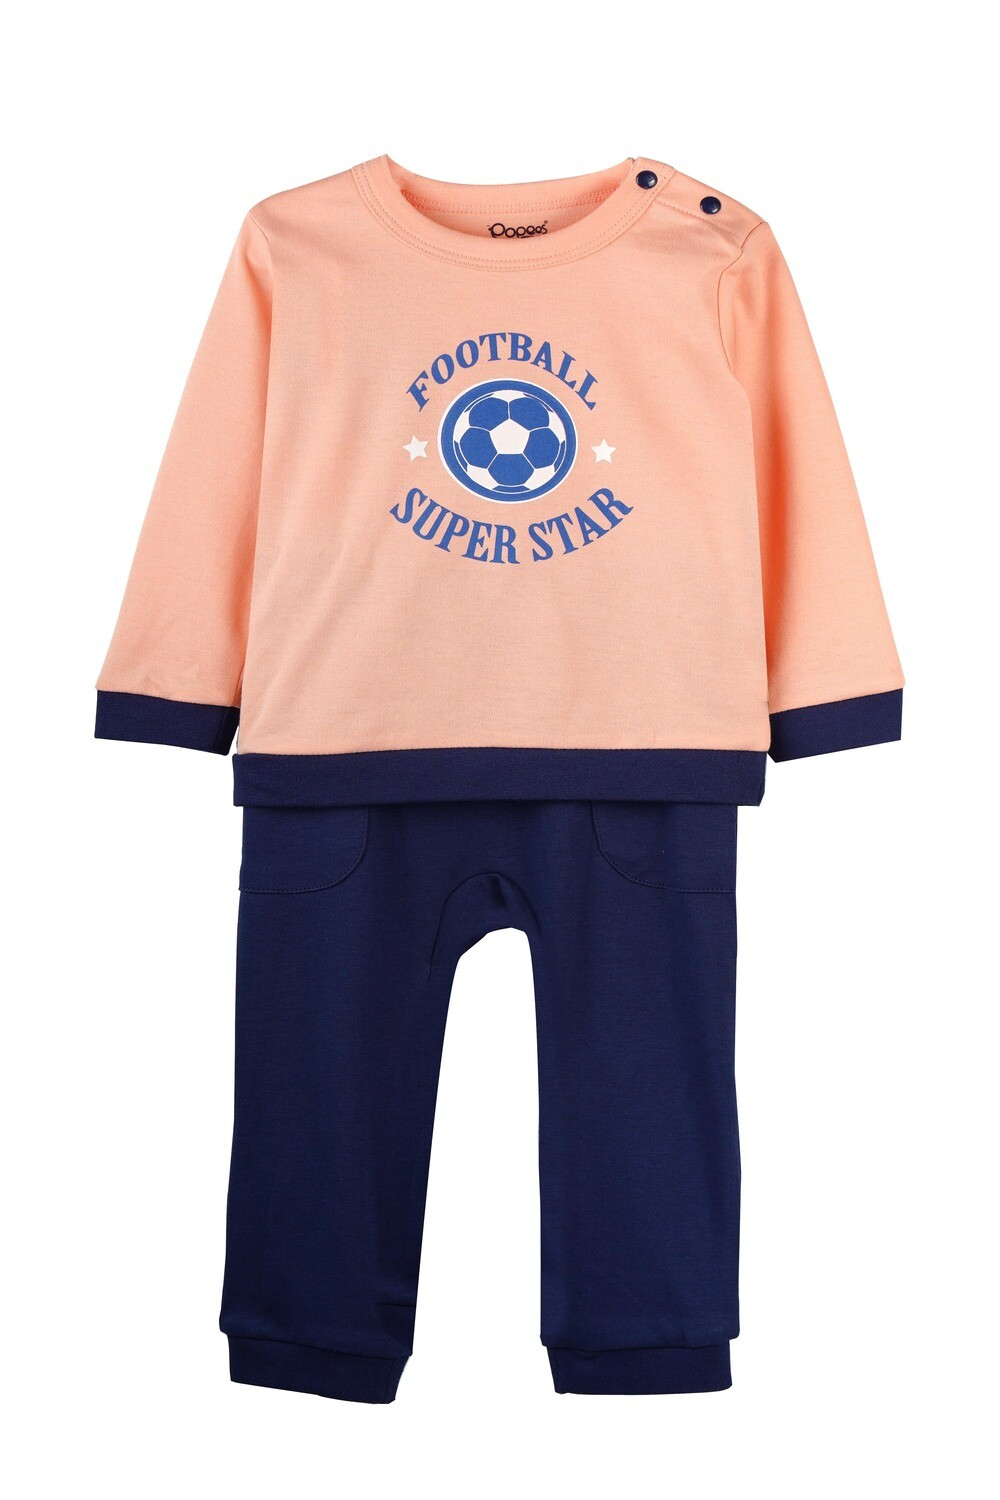 KIRTON PEACH Full Sleeve Shoulder Open Top and Pant for Baby Boys